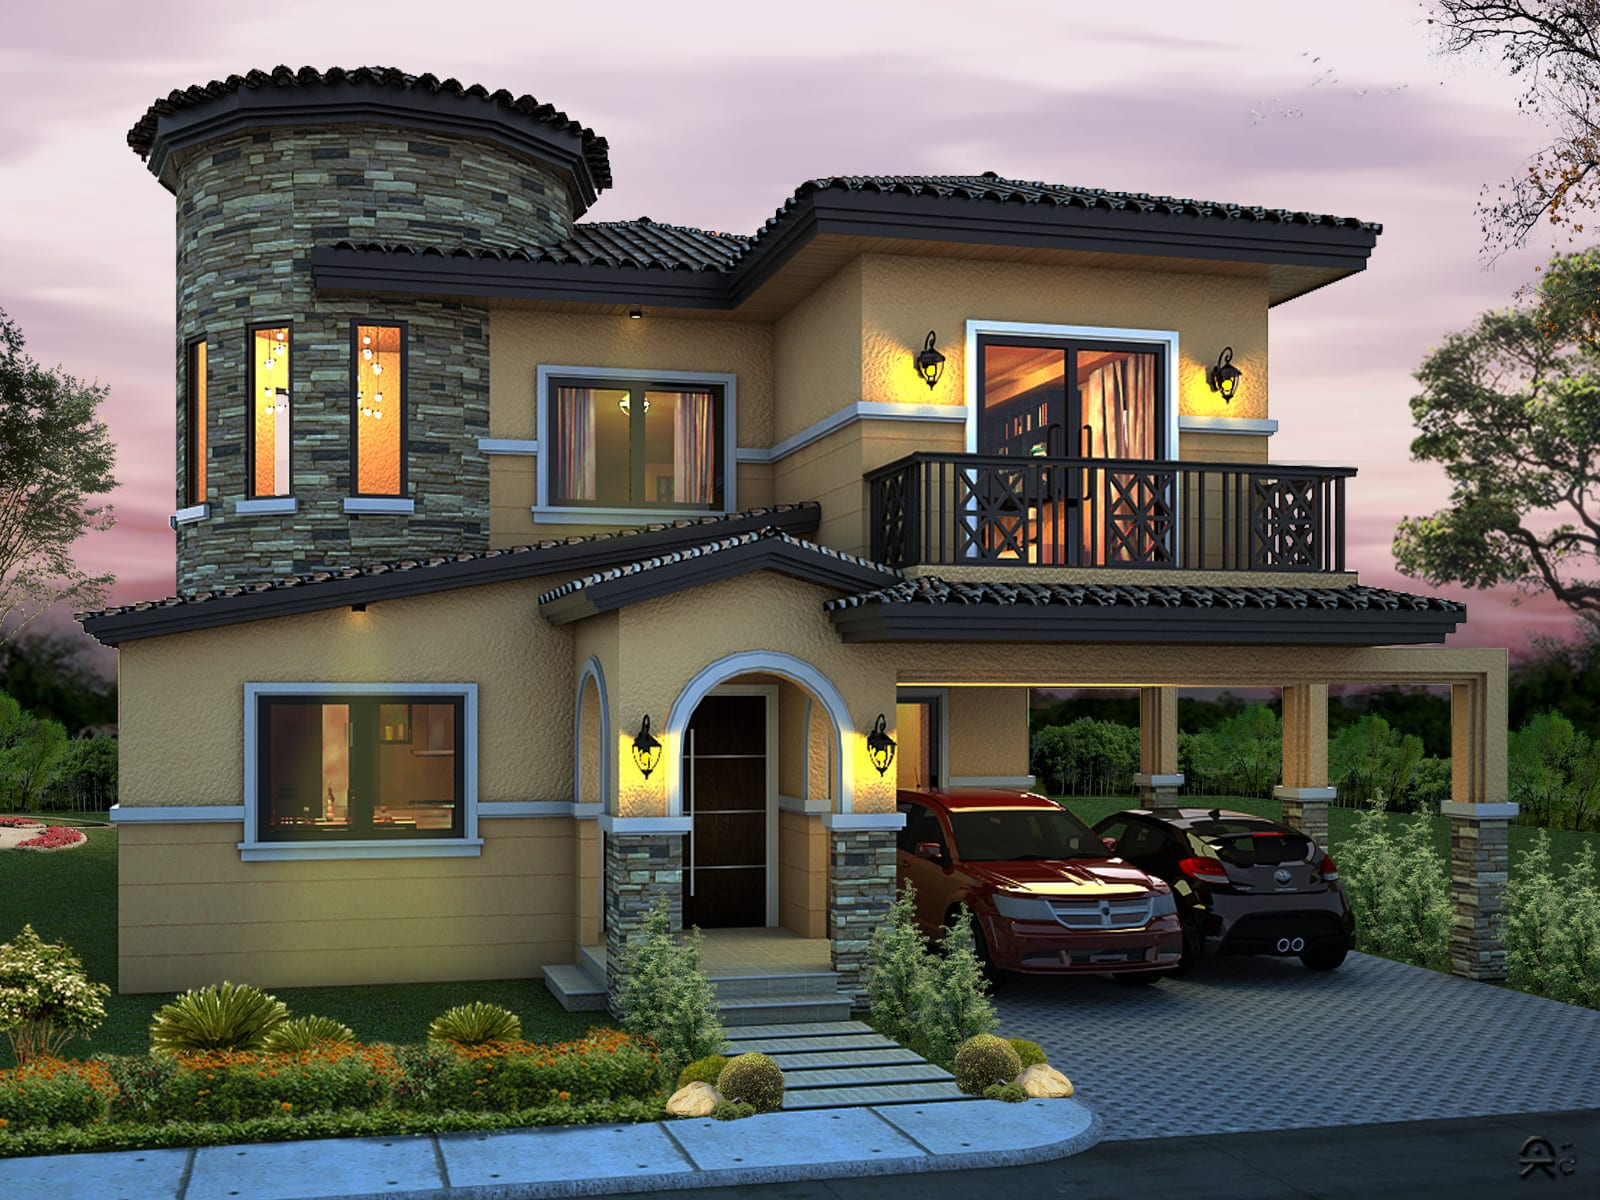 What-are-beautiful-exterior-rendering-ideas-22